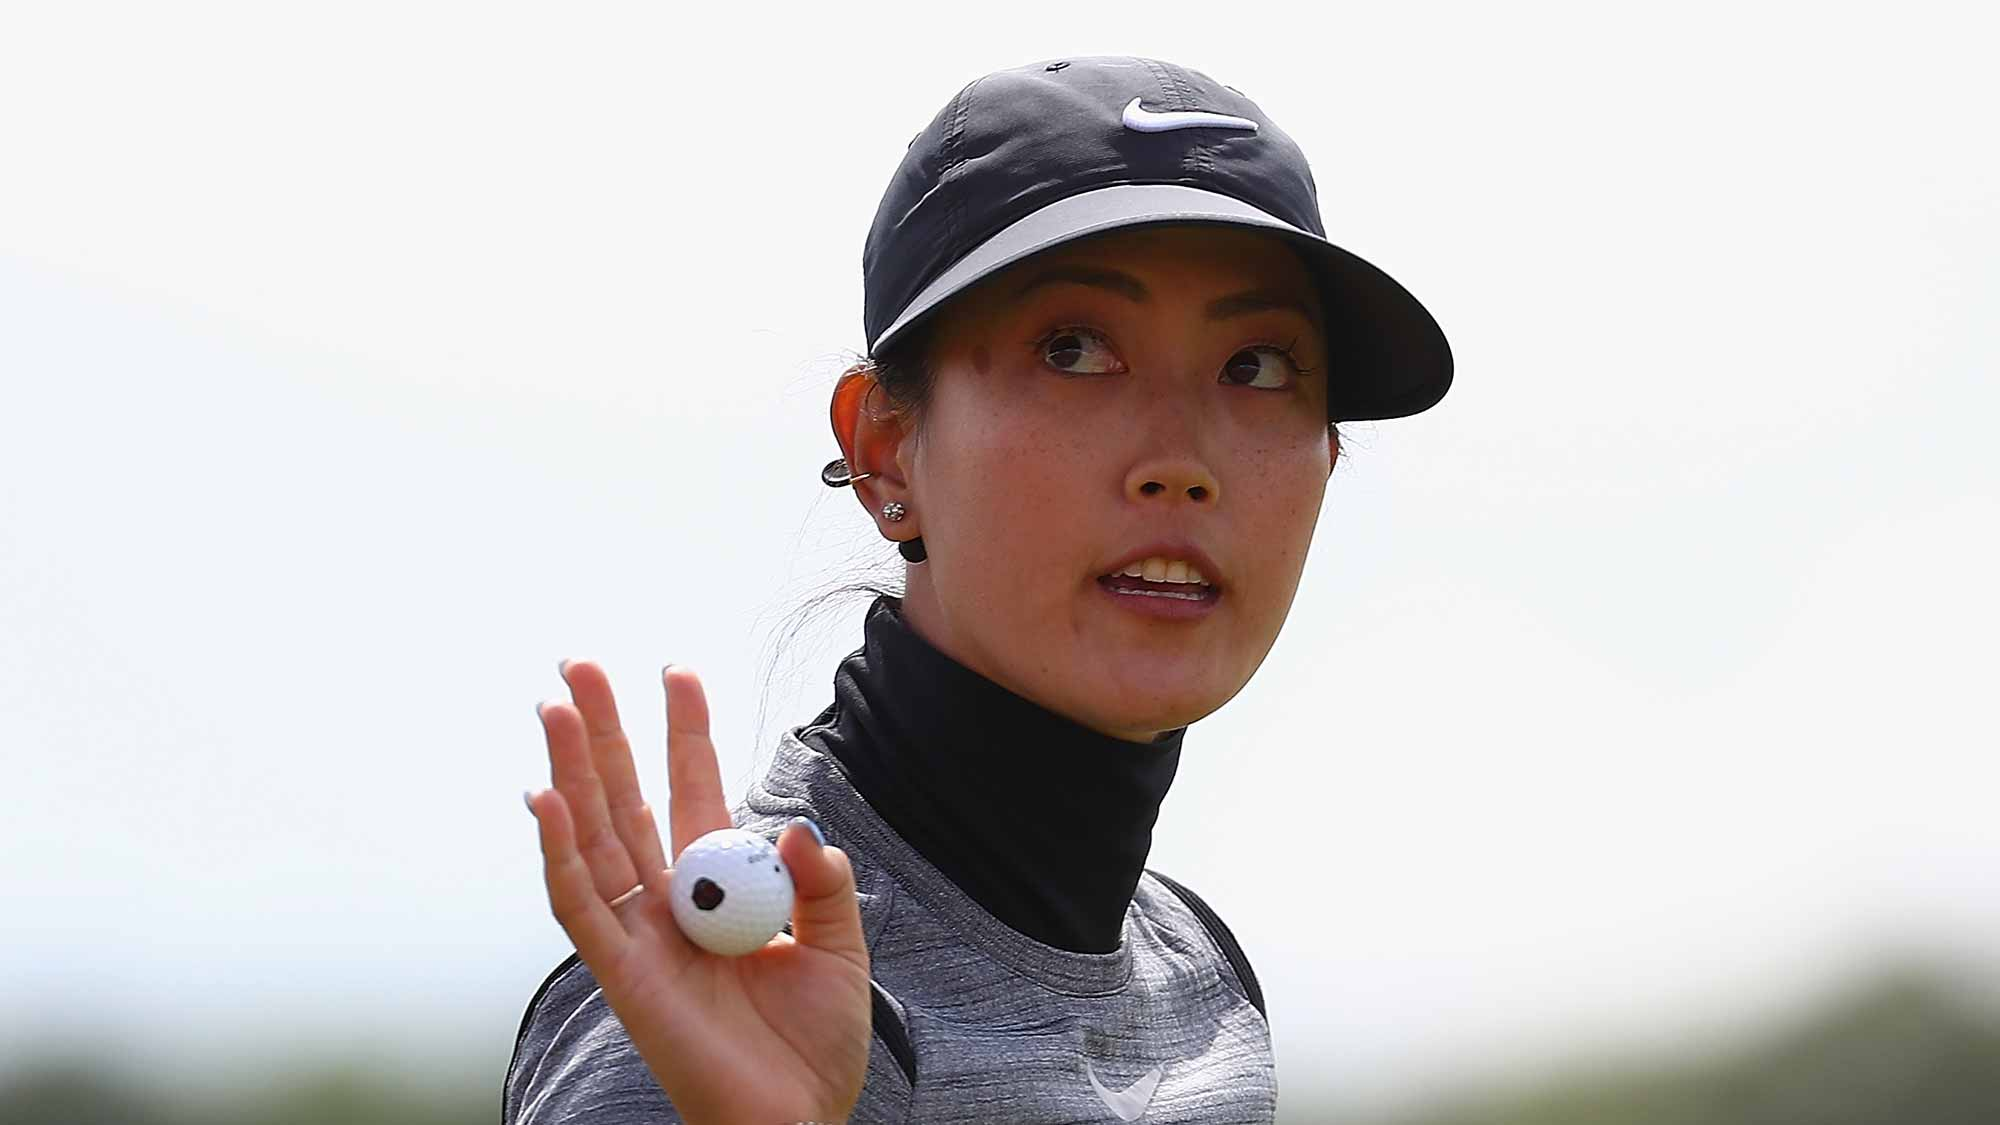 Michelle Wie of the United States celebrates her putt on the 18th green during the first round of the Ricoh Women's British Open at Kingsbarns Golf Links